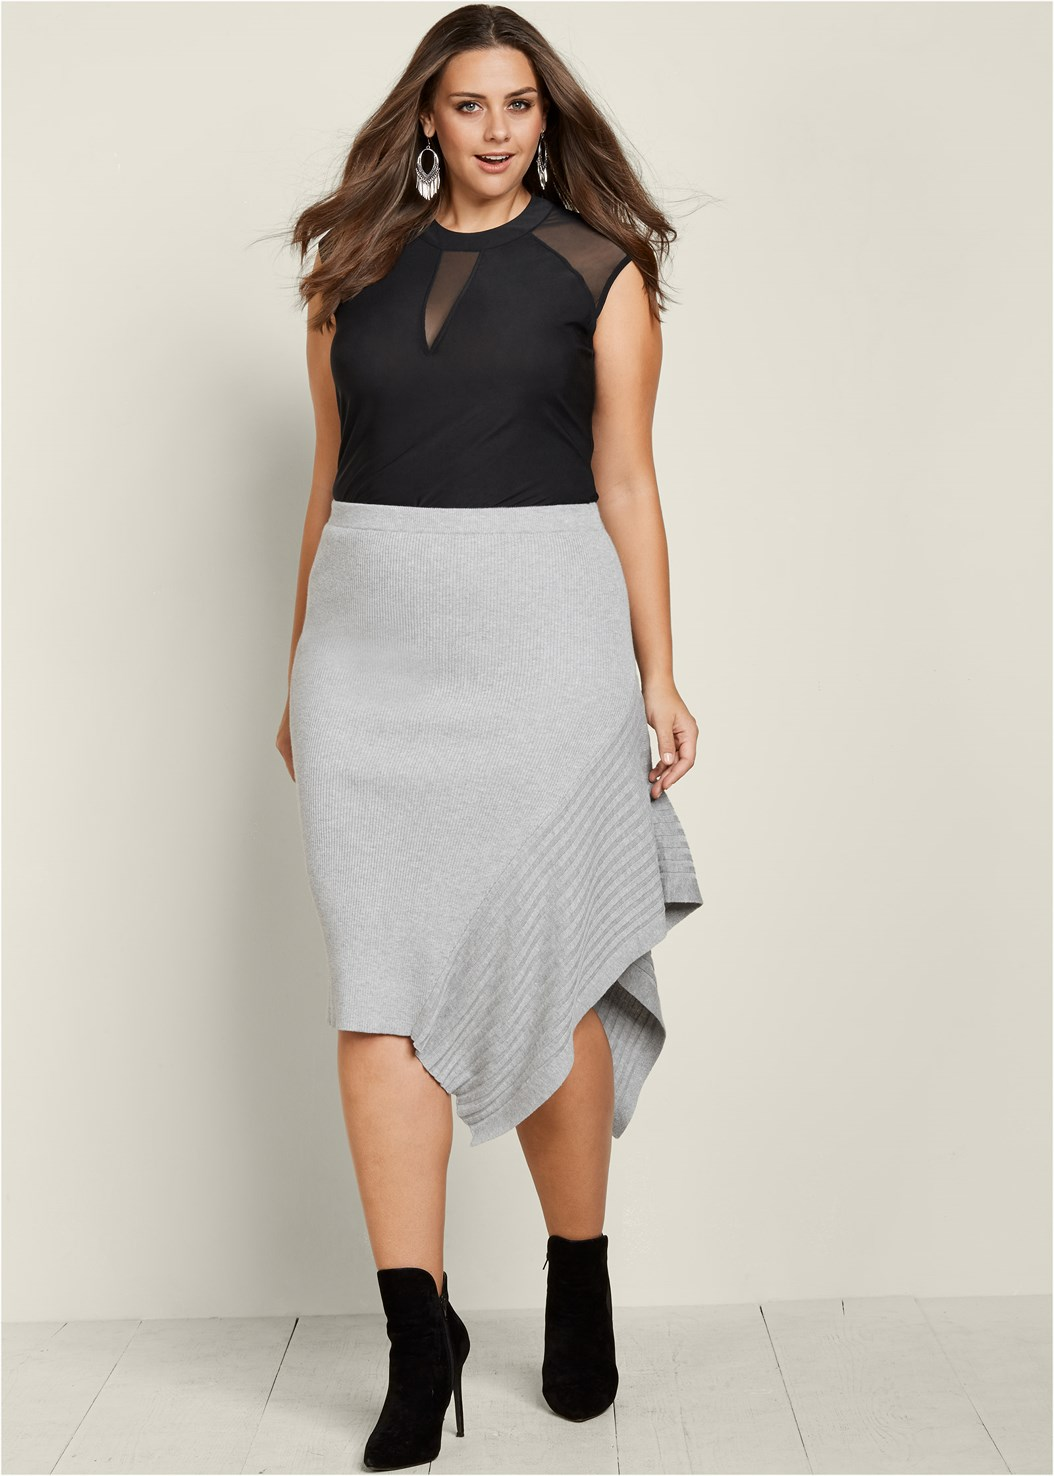 Sweater Asymmetrical Skirt,Faux Suede Pointy Booties